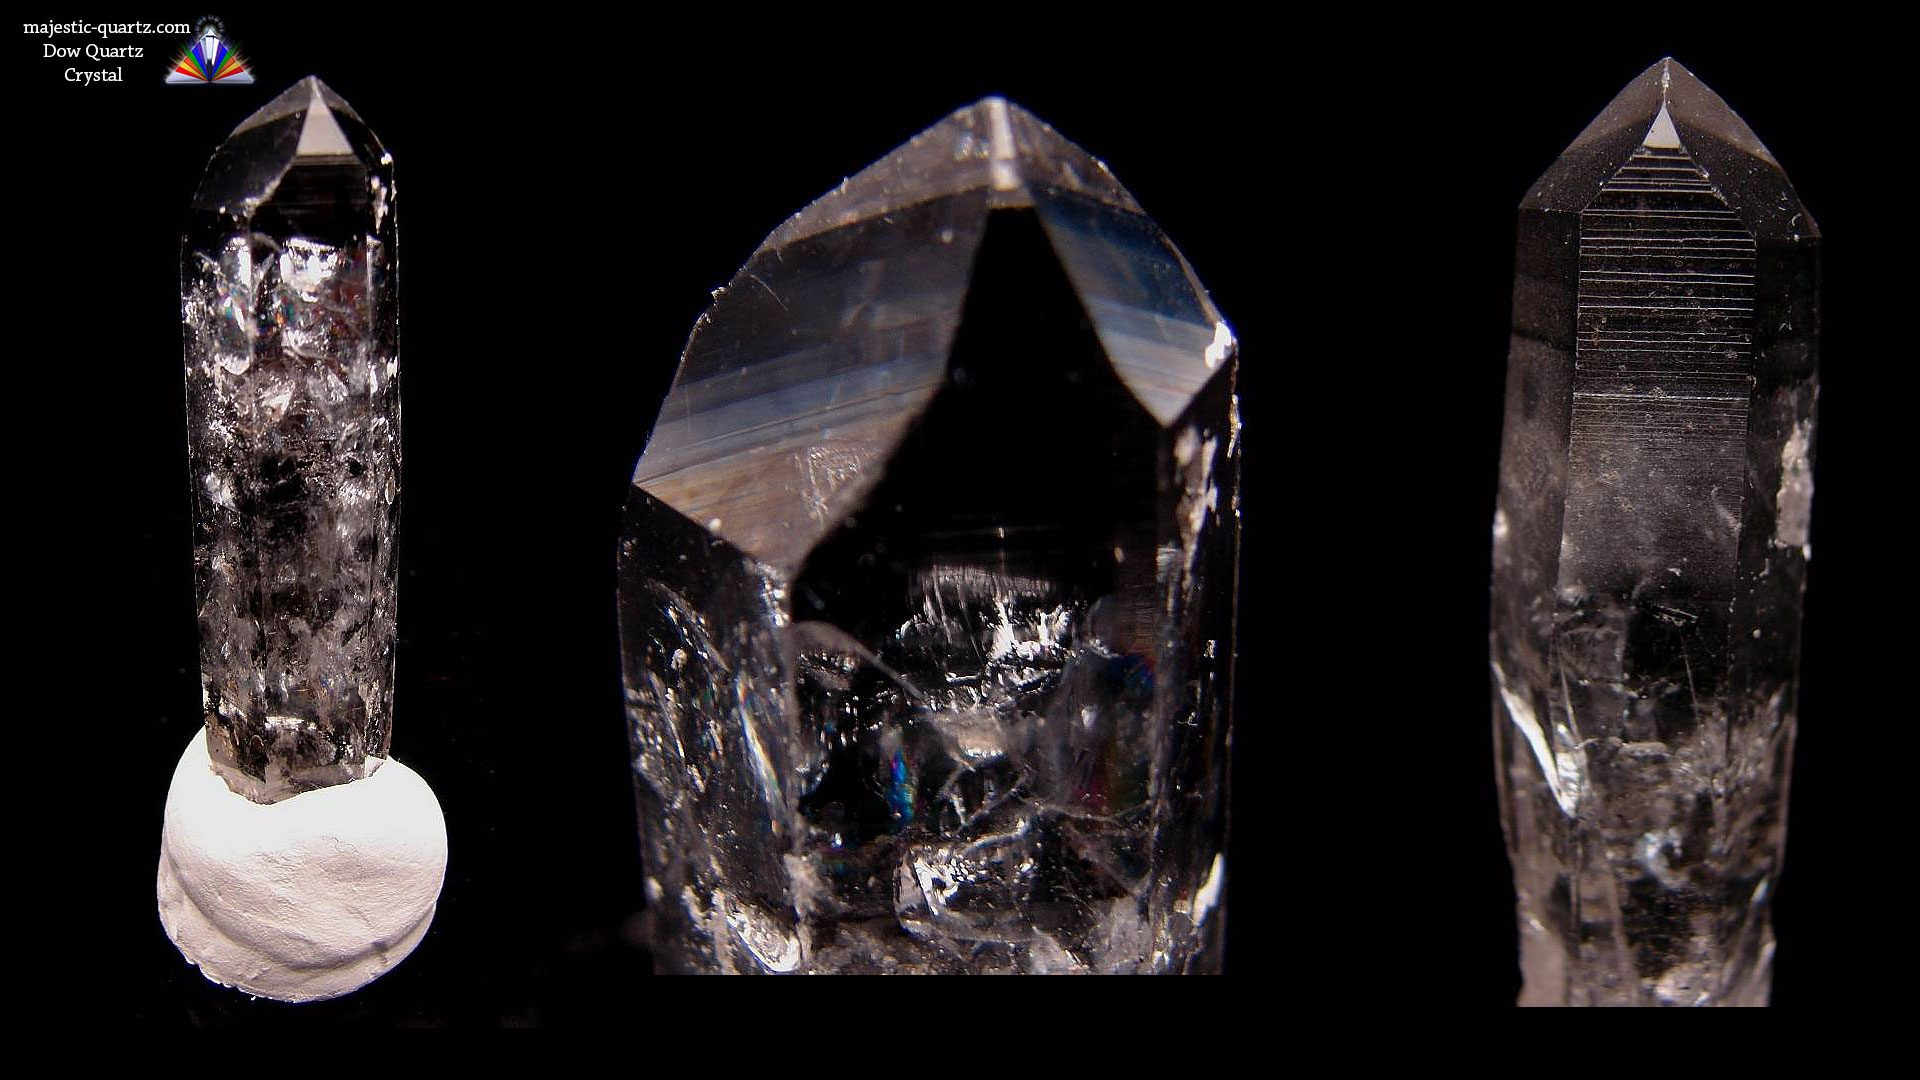 Quartz Dow Crystal - Photograph By Anthony Bradford